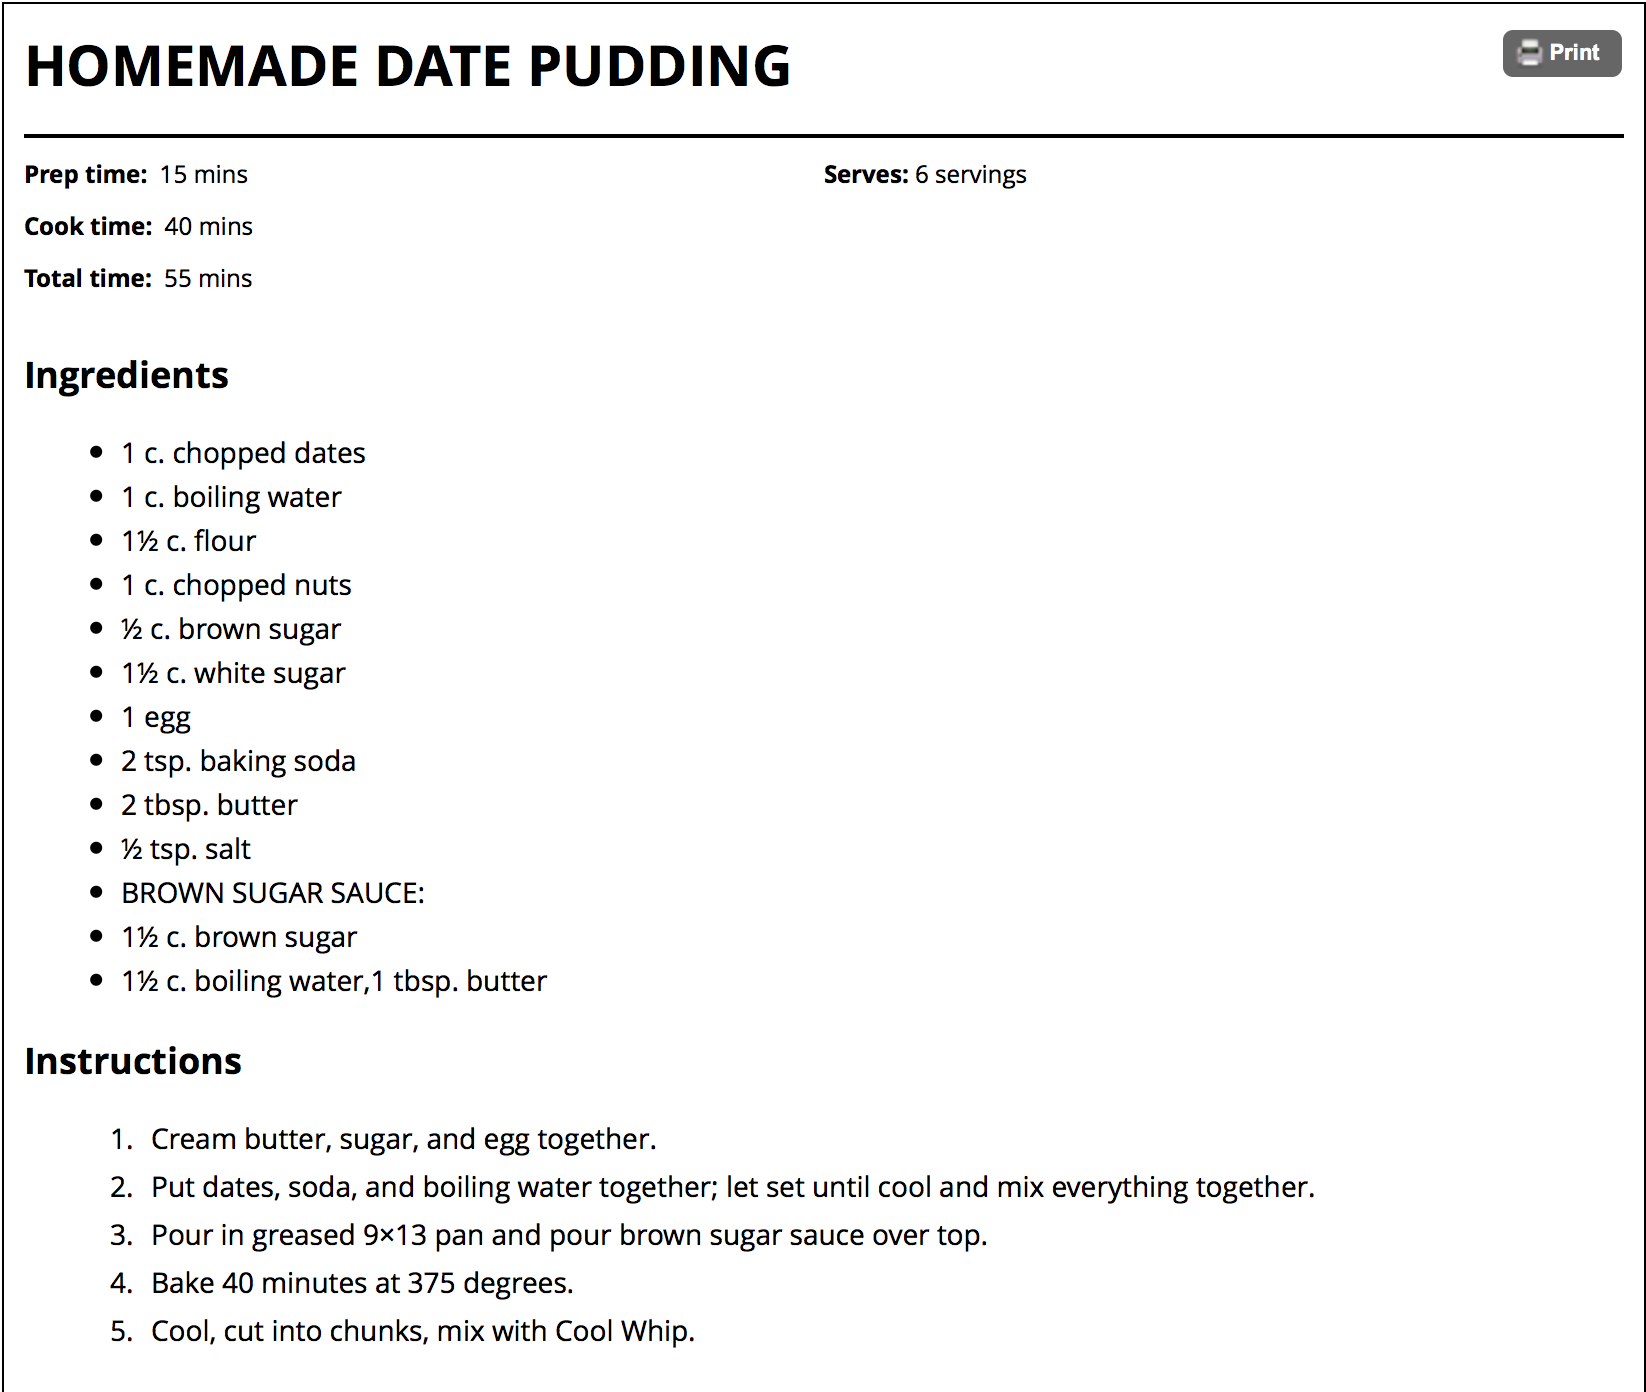 Homemade Date Pudding - Amish365.com